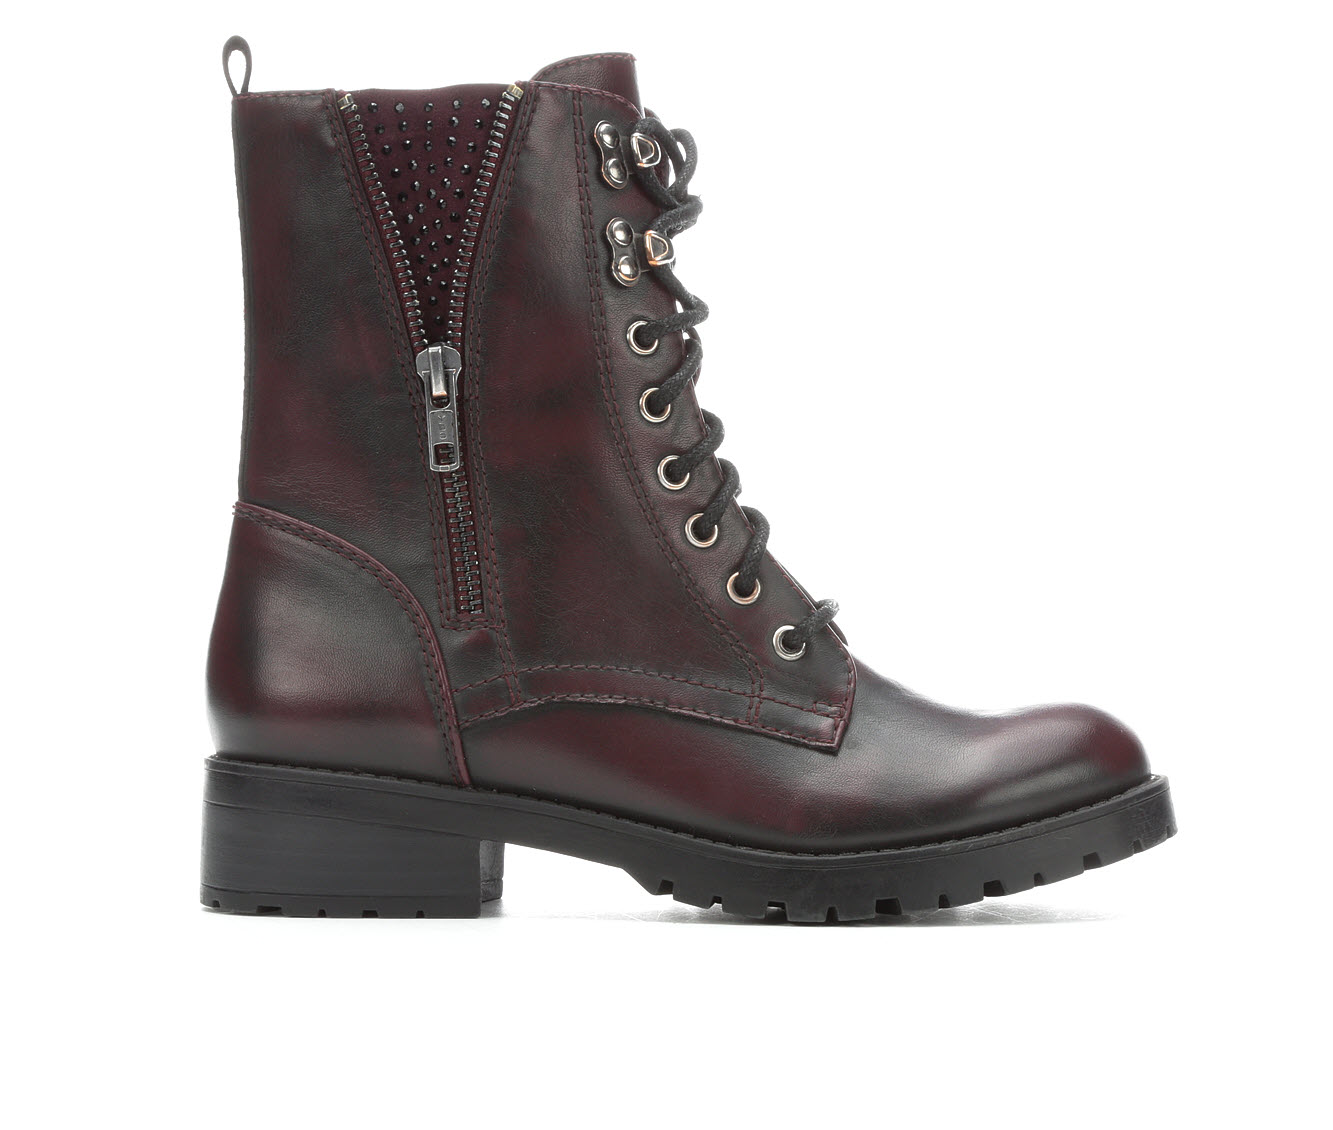 Unr8ed Kit Women's Boots (Red - Faux Leather)